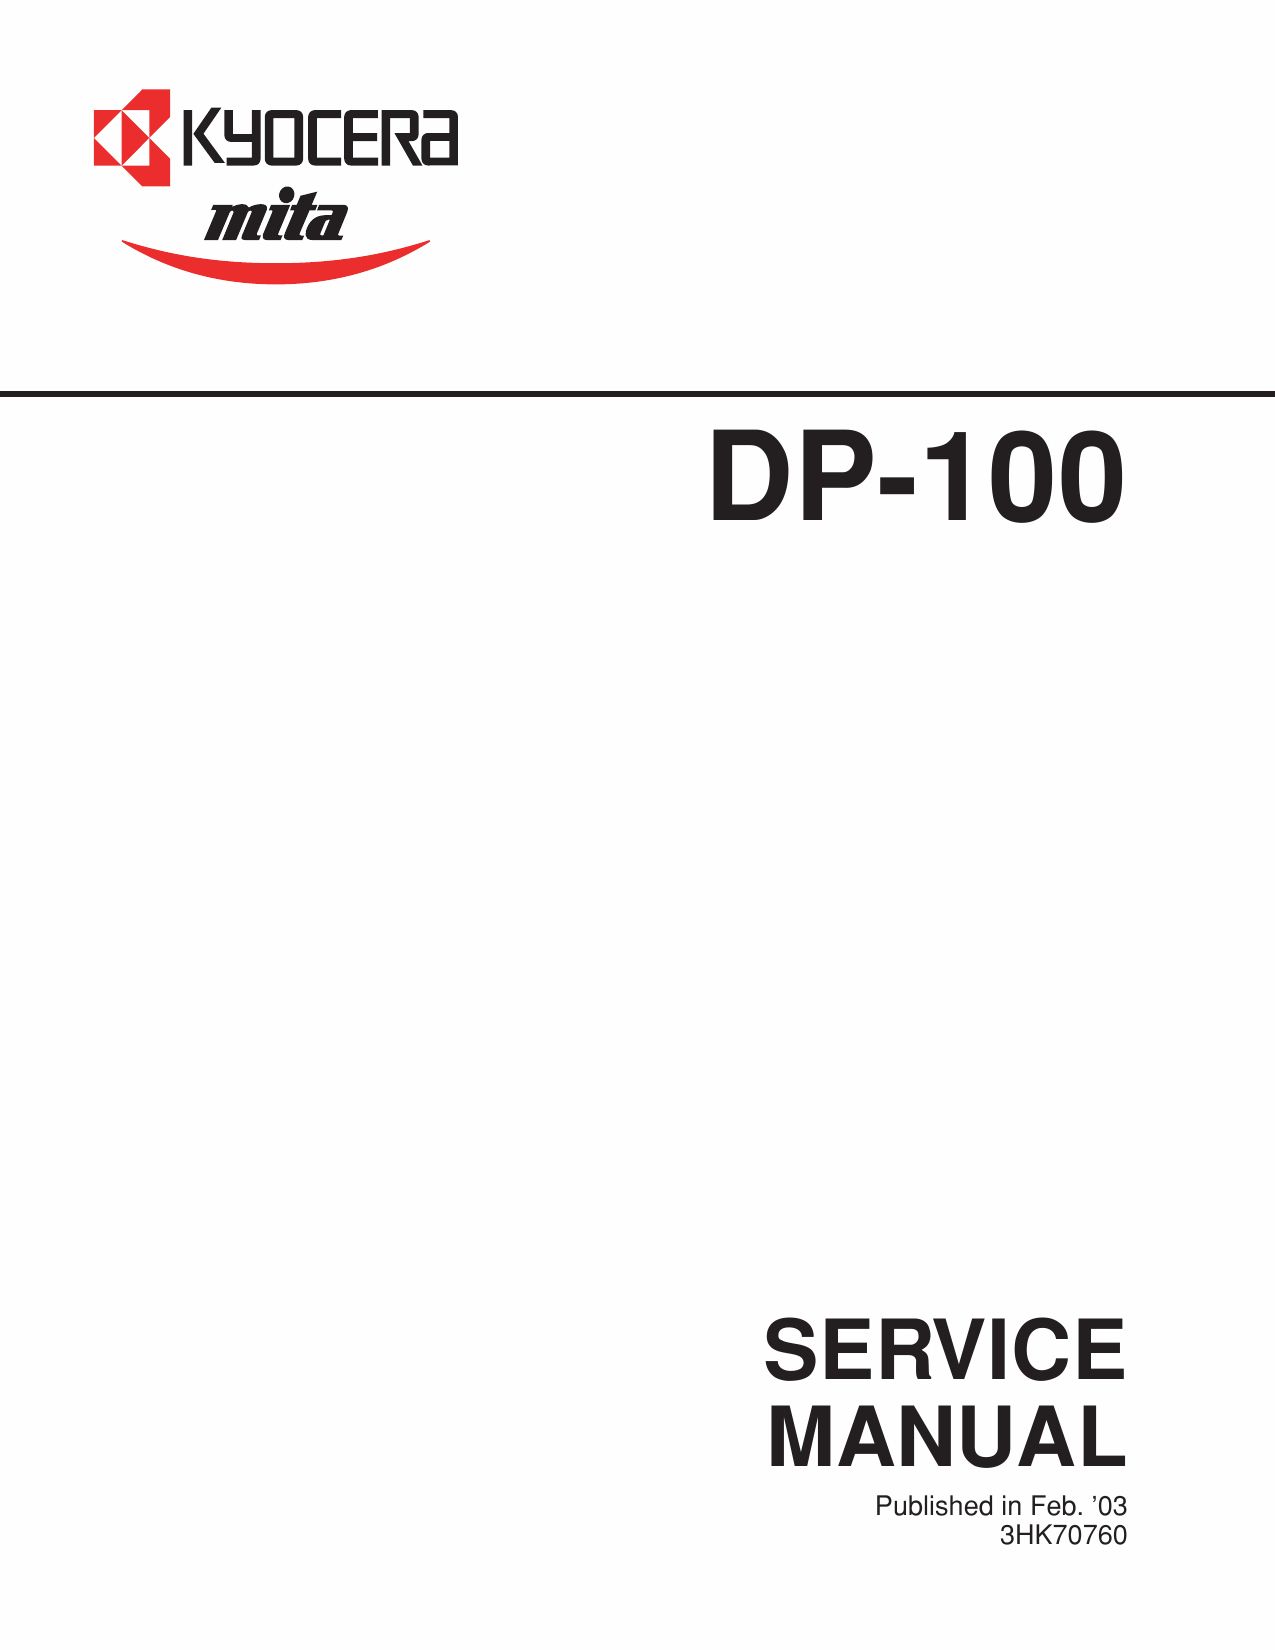 KYOCERA Options DP-100 Parts and Service Manual-1